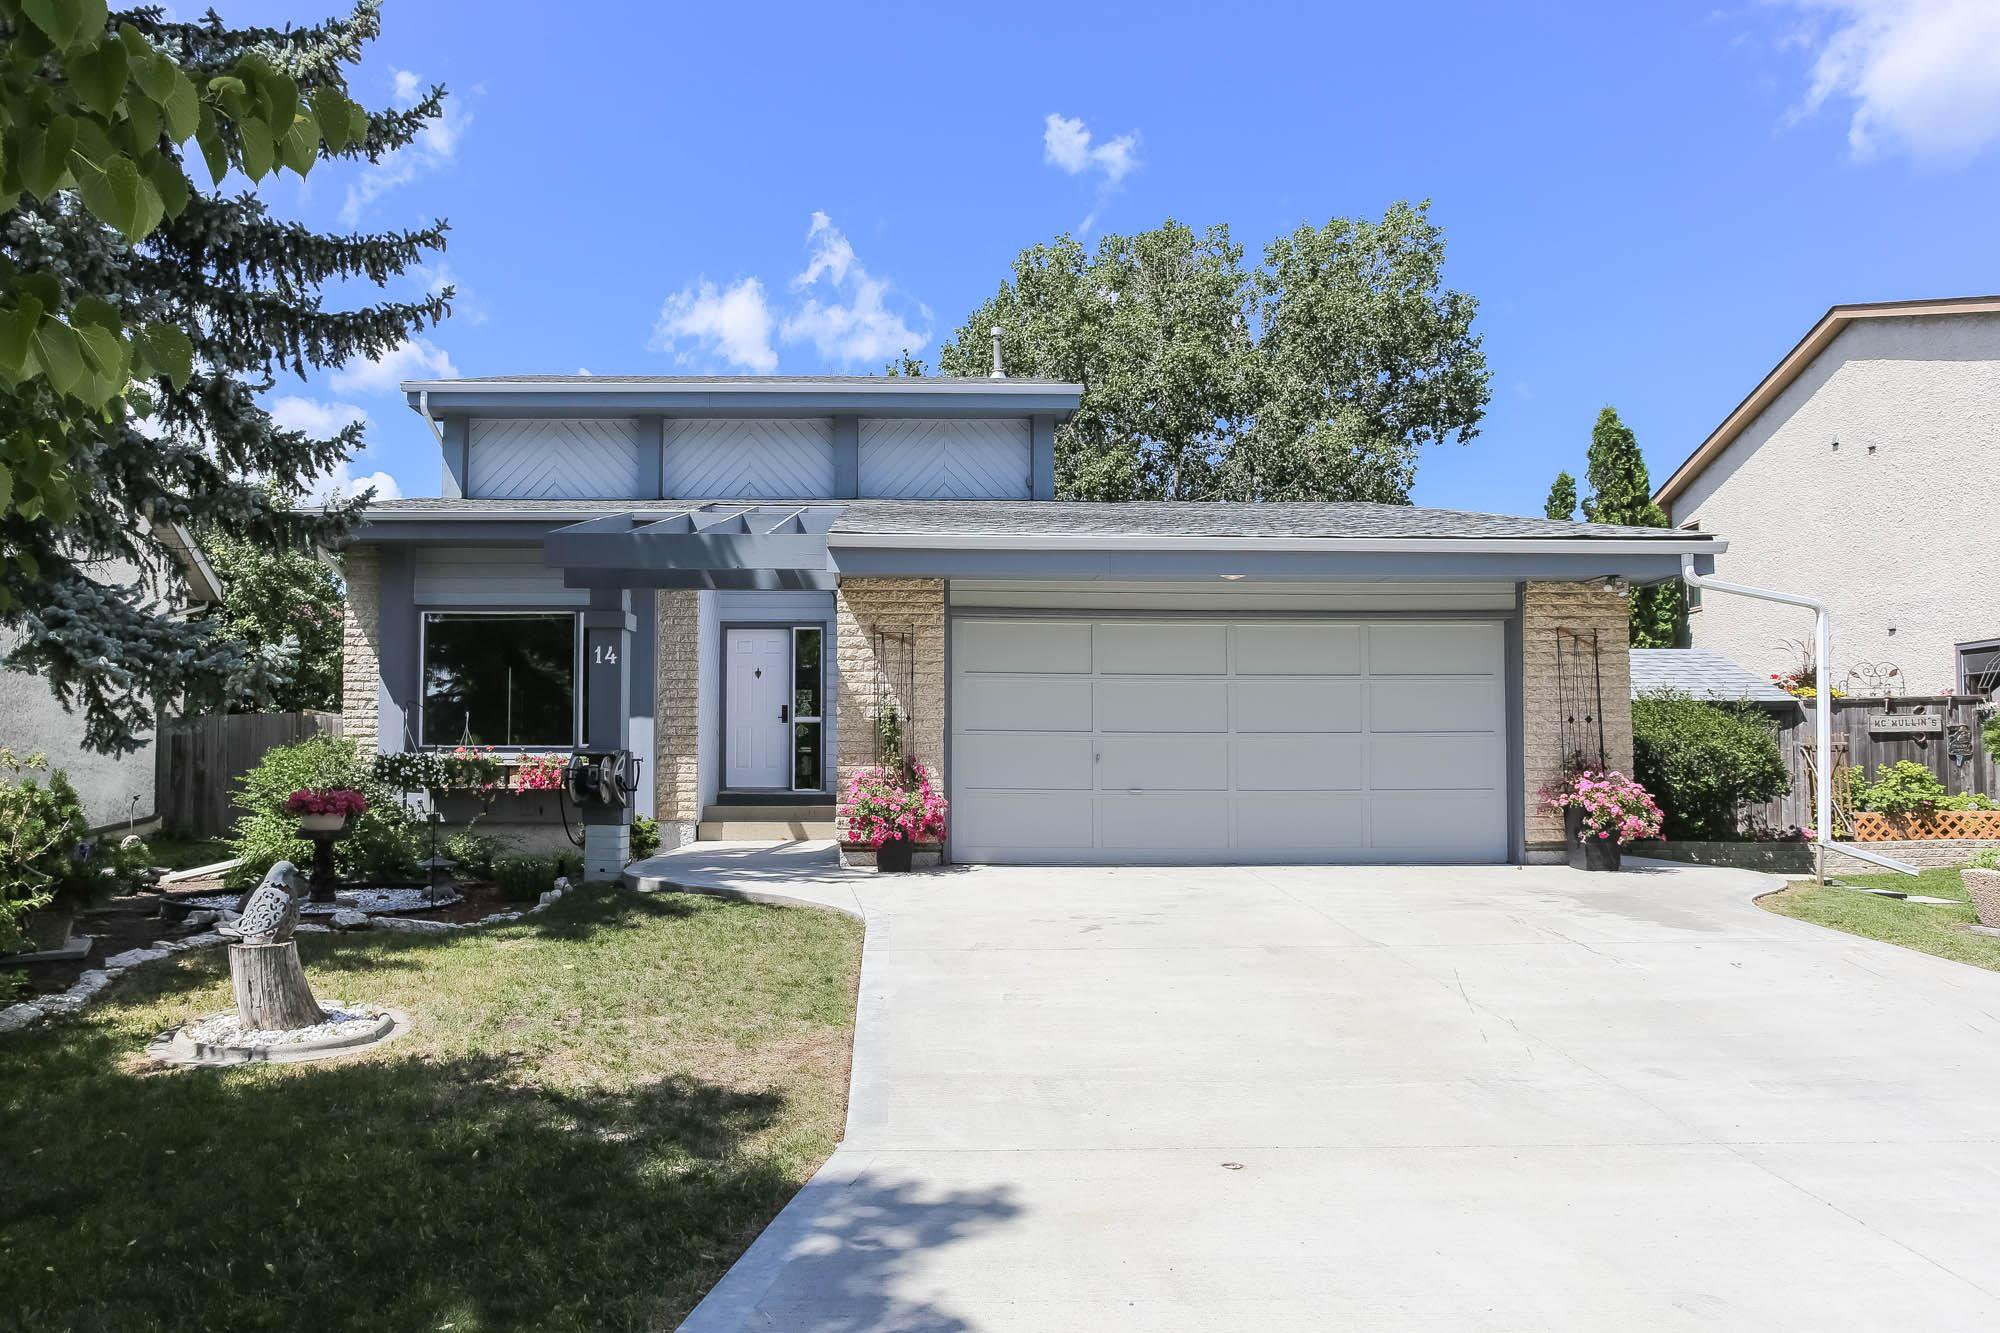 Photo 33: Photos: 14 Torrington Road in Winnipeg: Whyte Ridge Single Family Detached for sale (1P)  : MLS®# 202017383